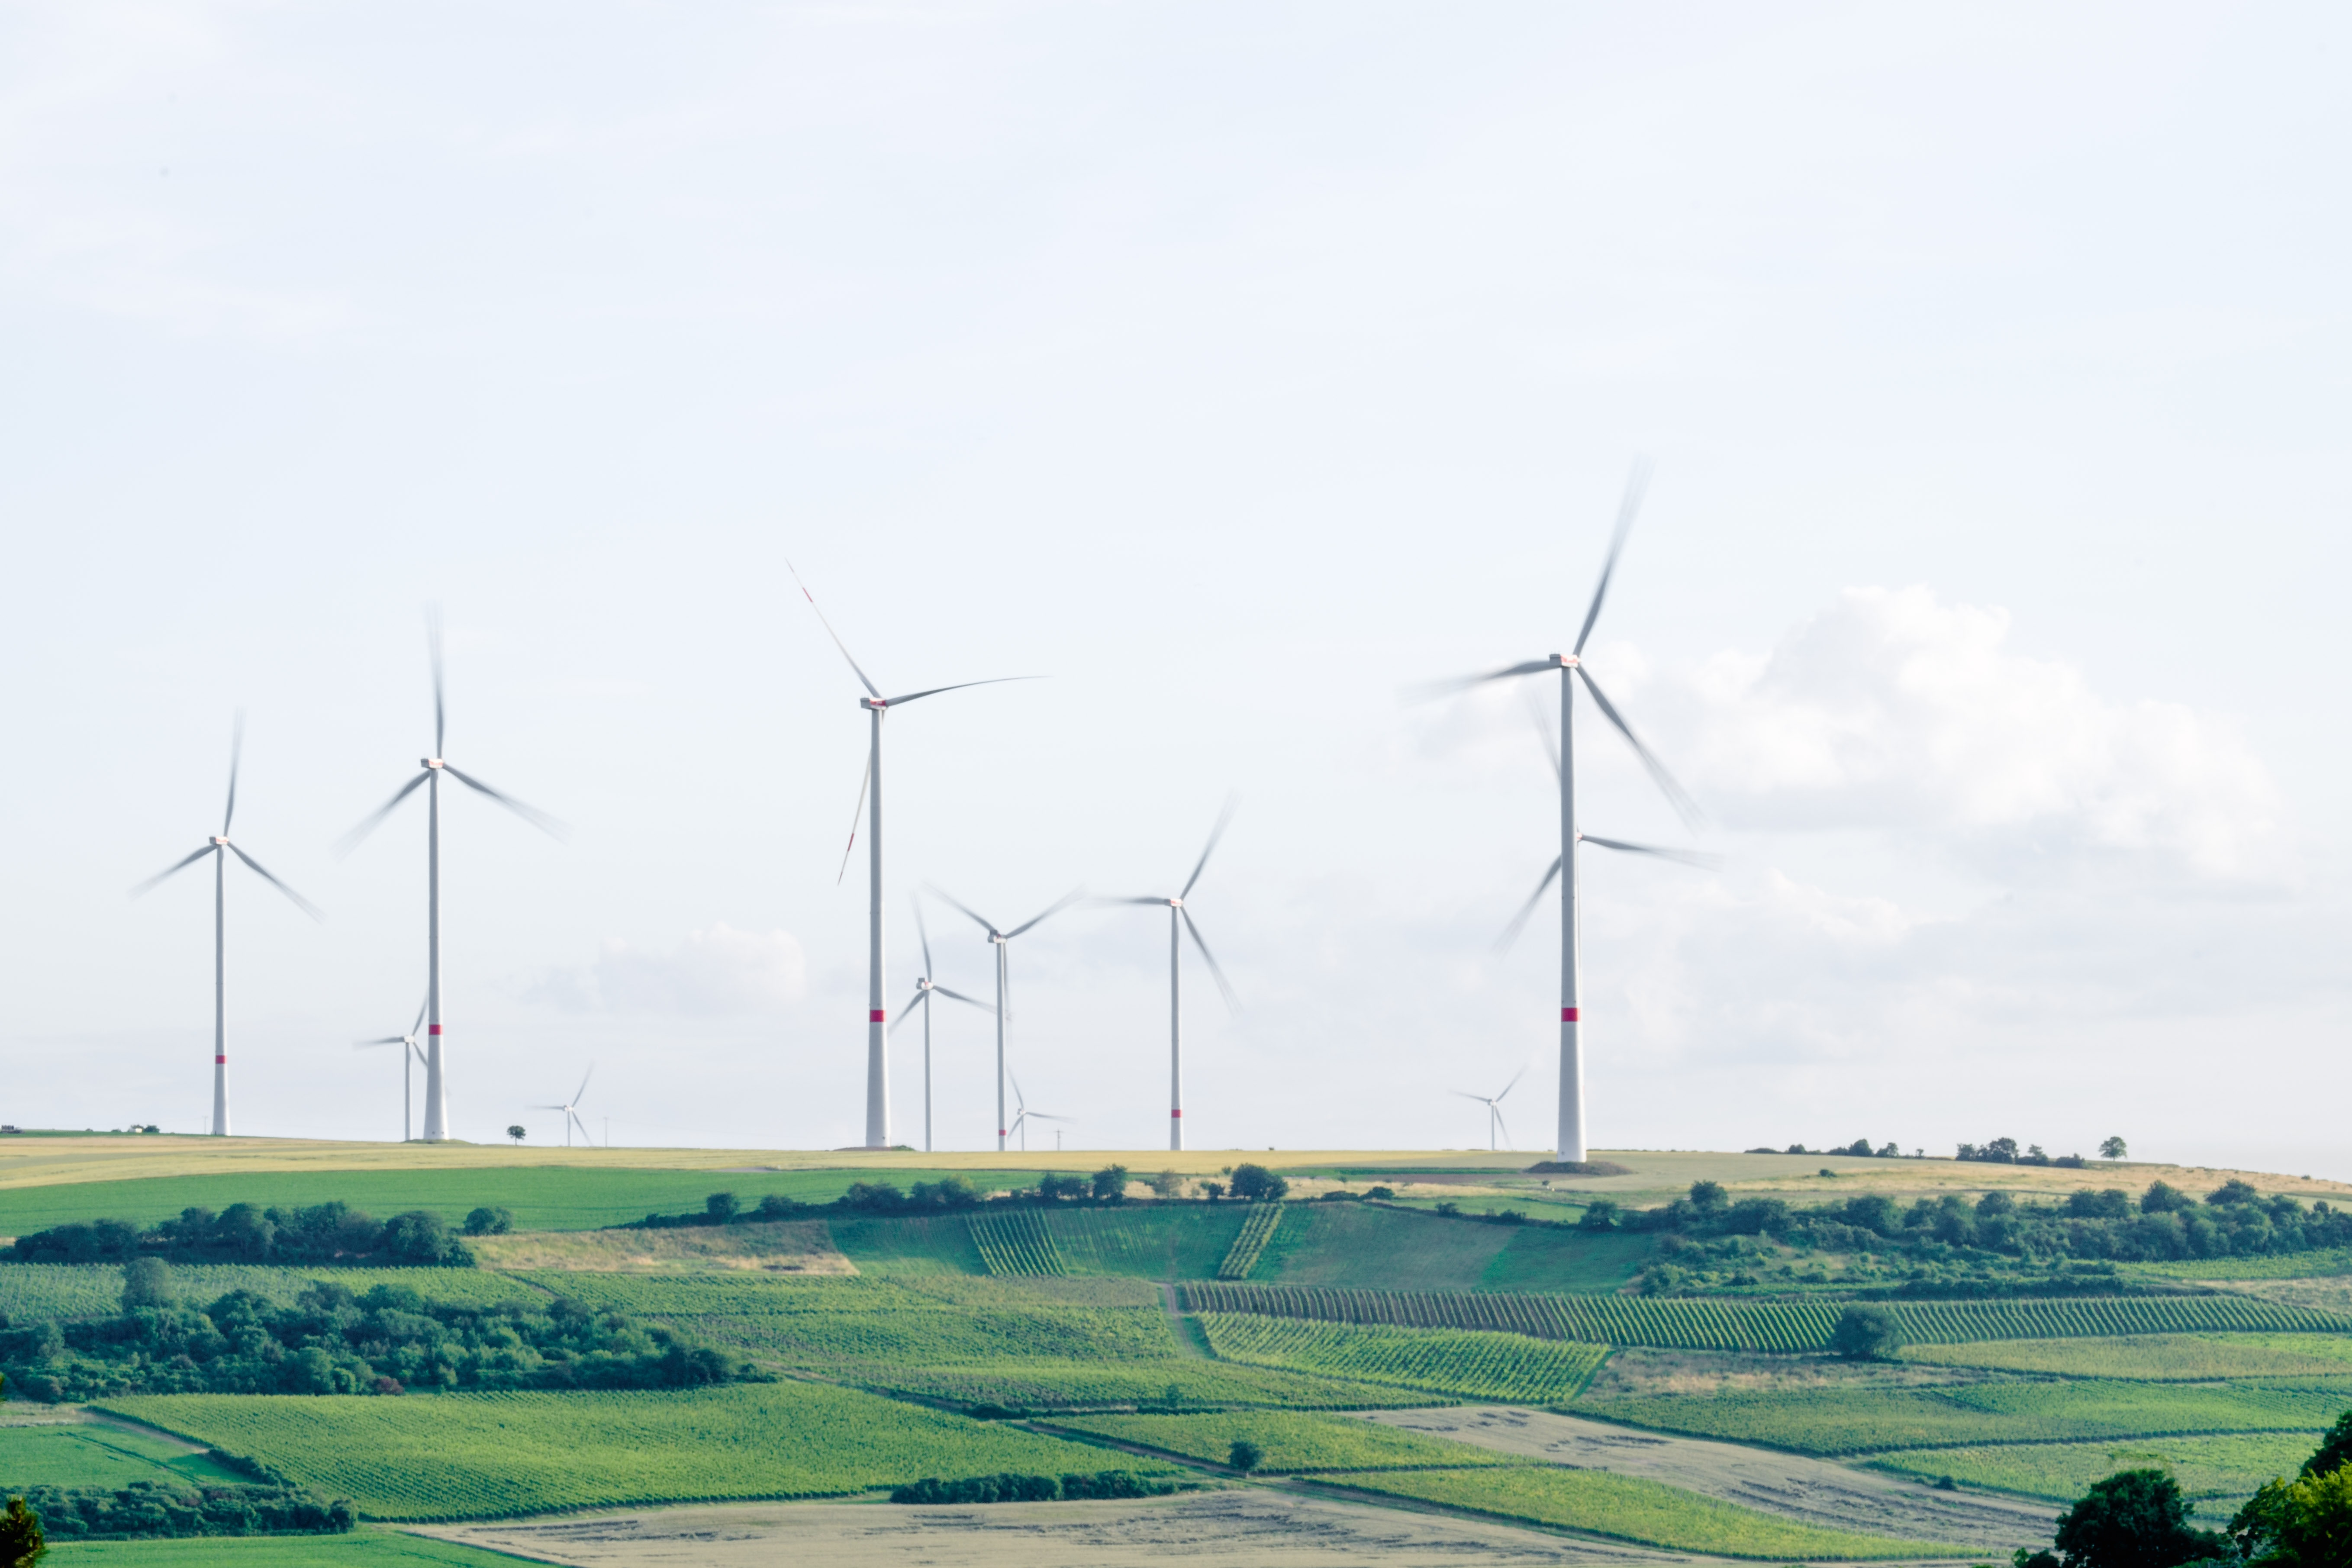 Windmills in Landscape Generating Green Electricity